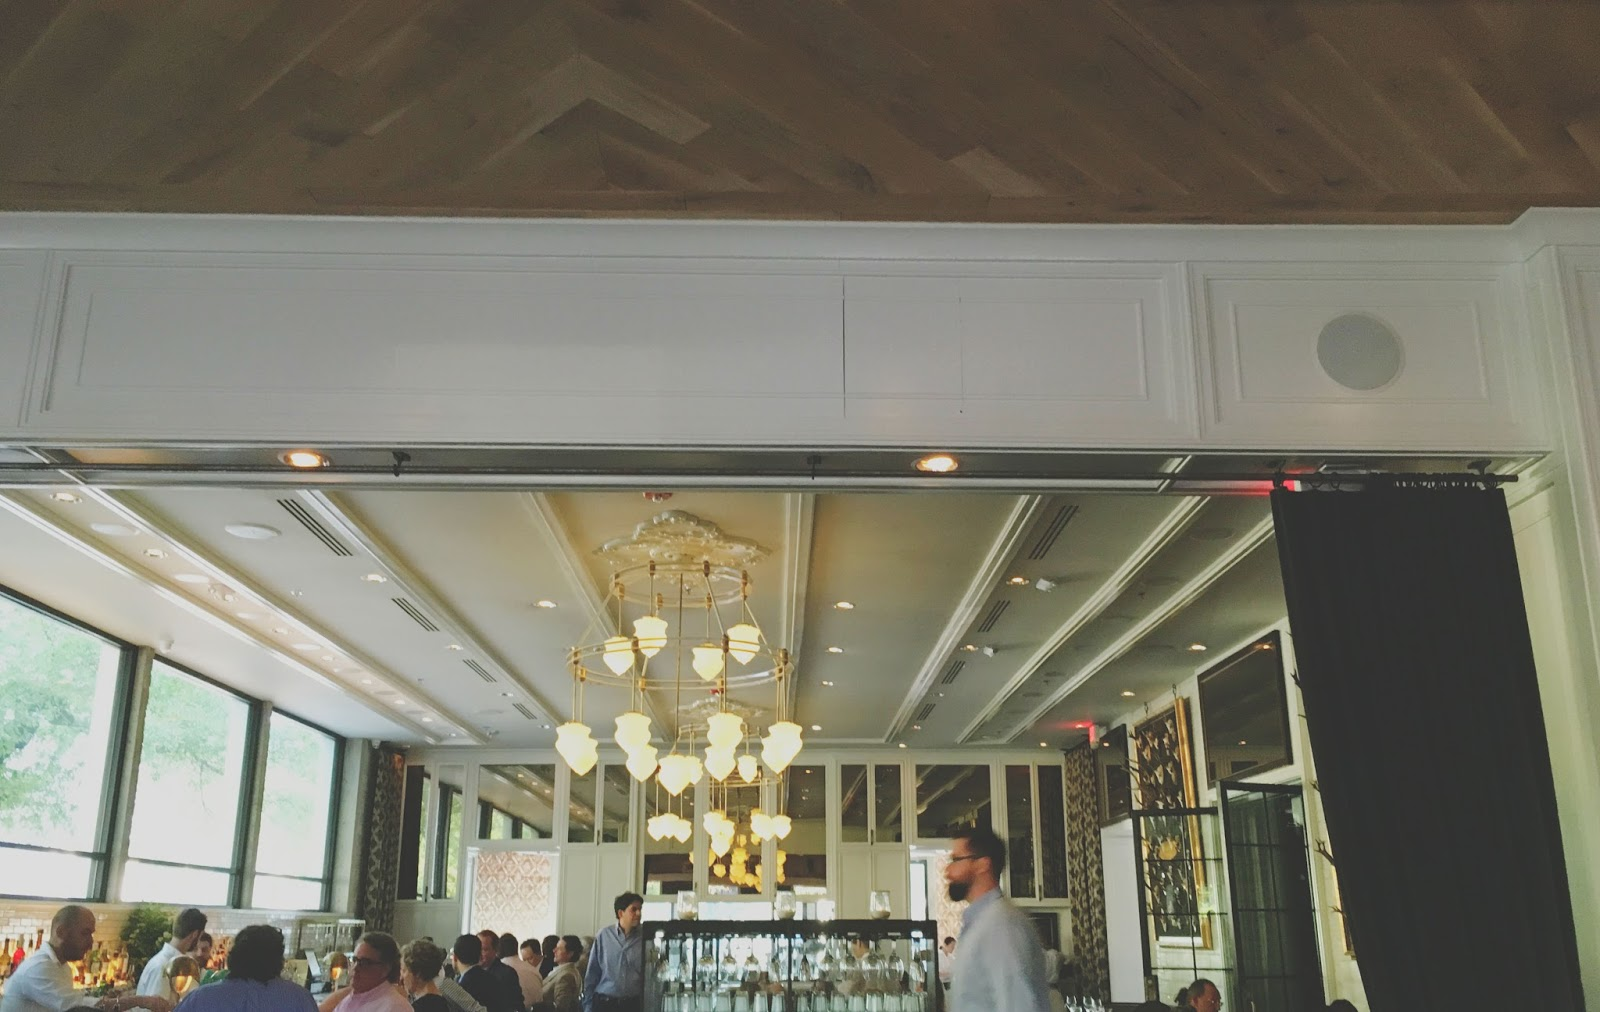 State of Grace - a restaurant located in Houston, Texas